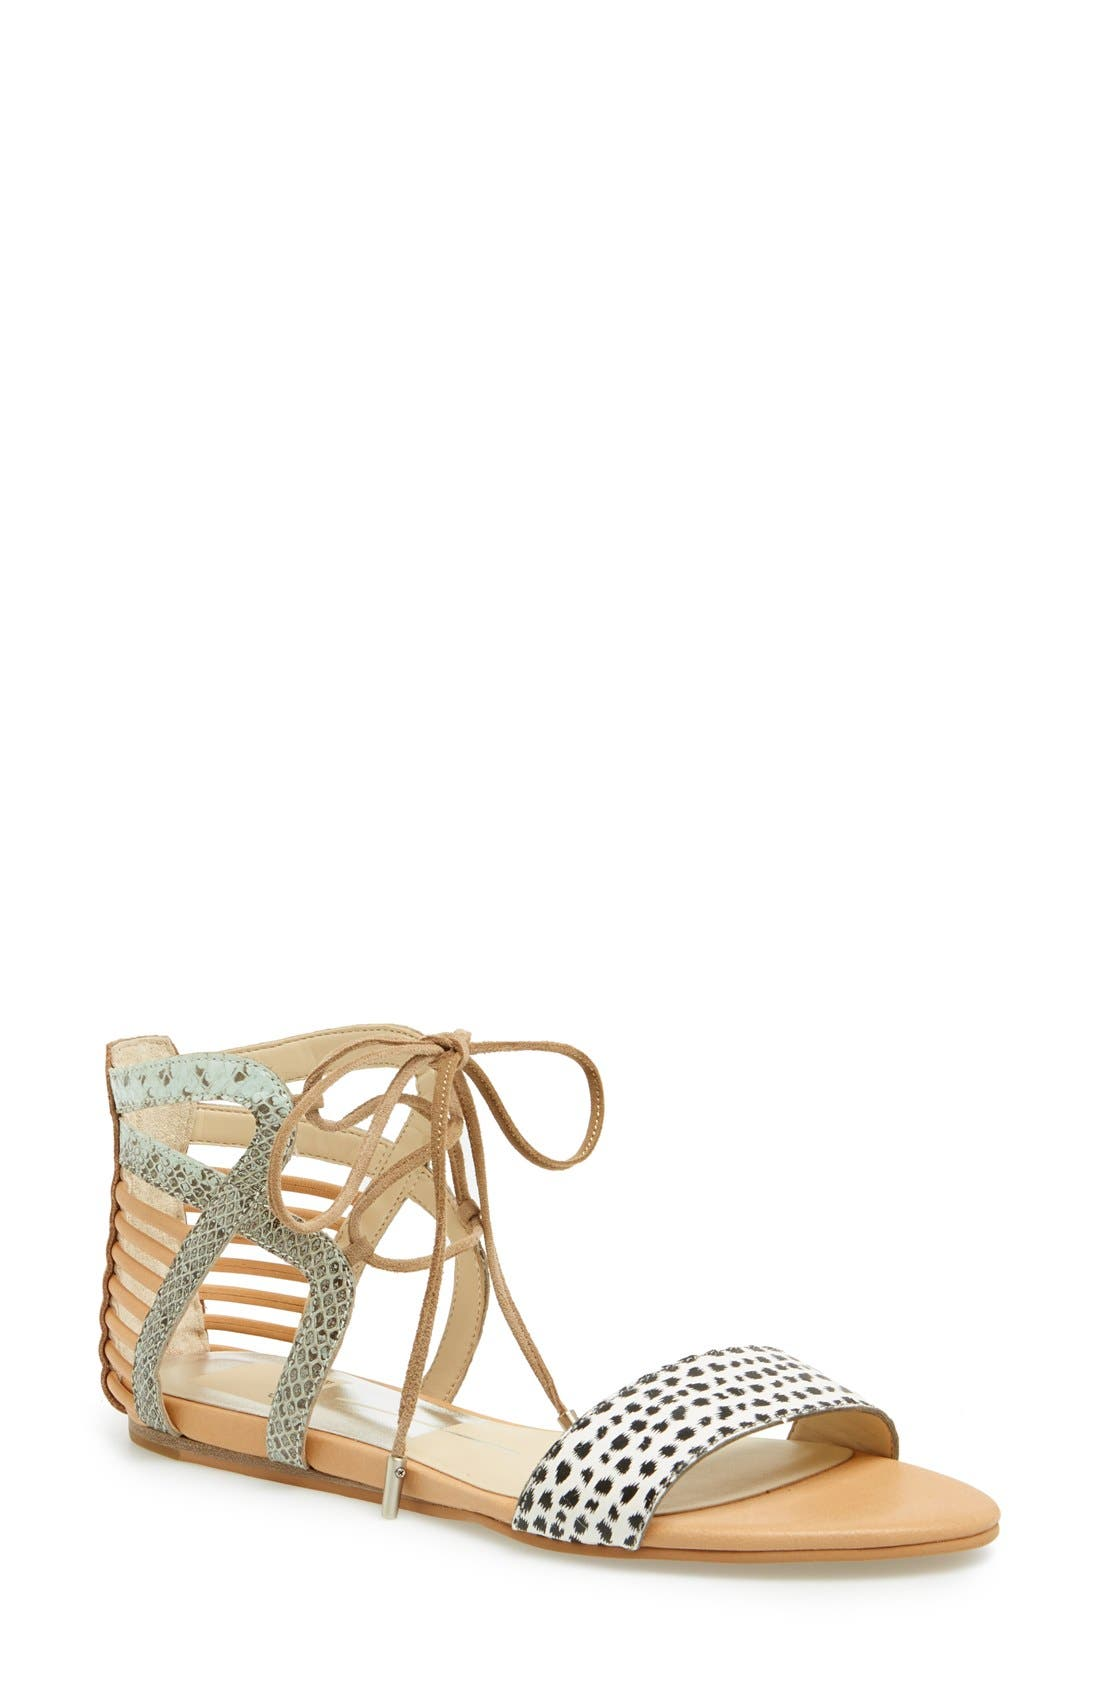 Main Image - Dolce Vita 'Ashtyn' Mixed Media Sandal (Women)